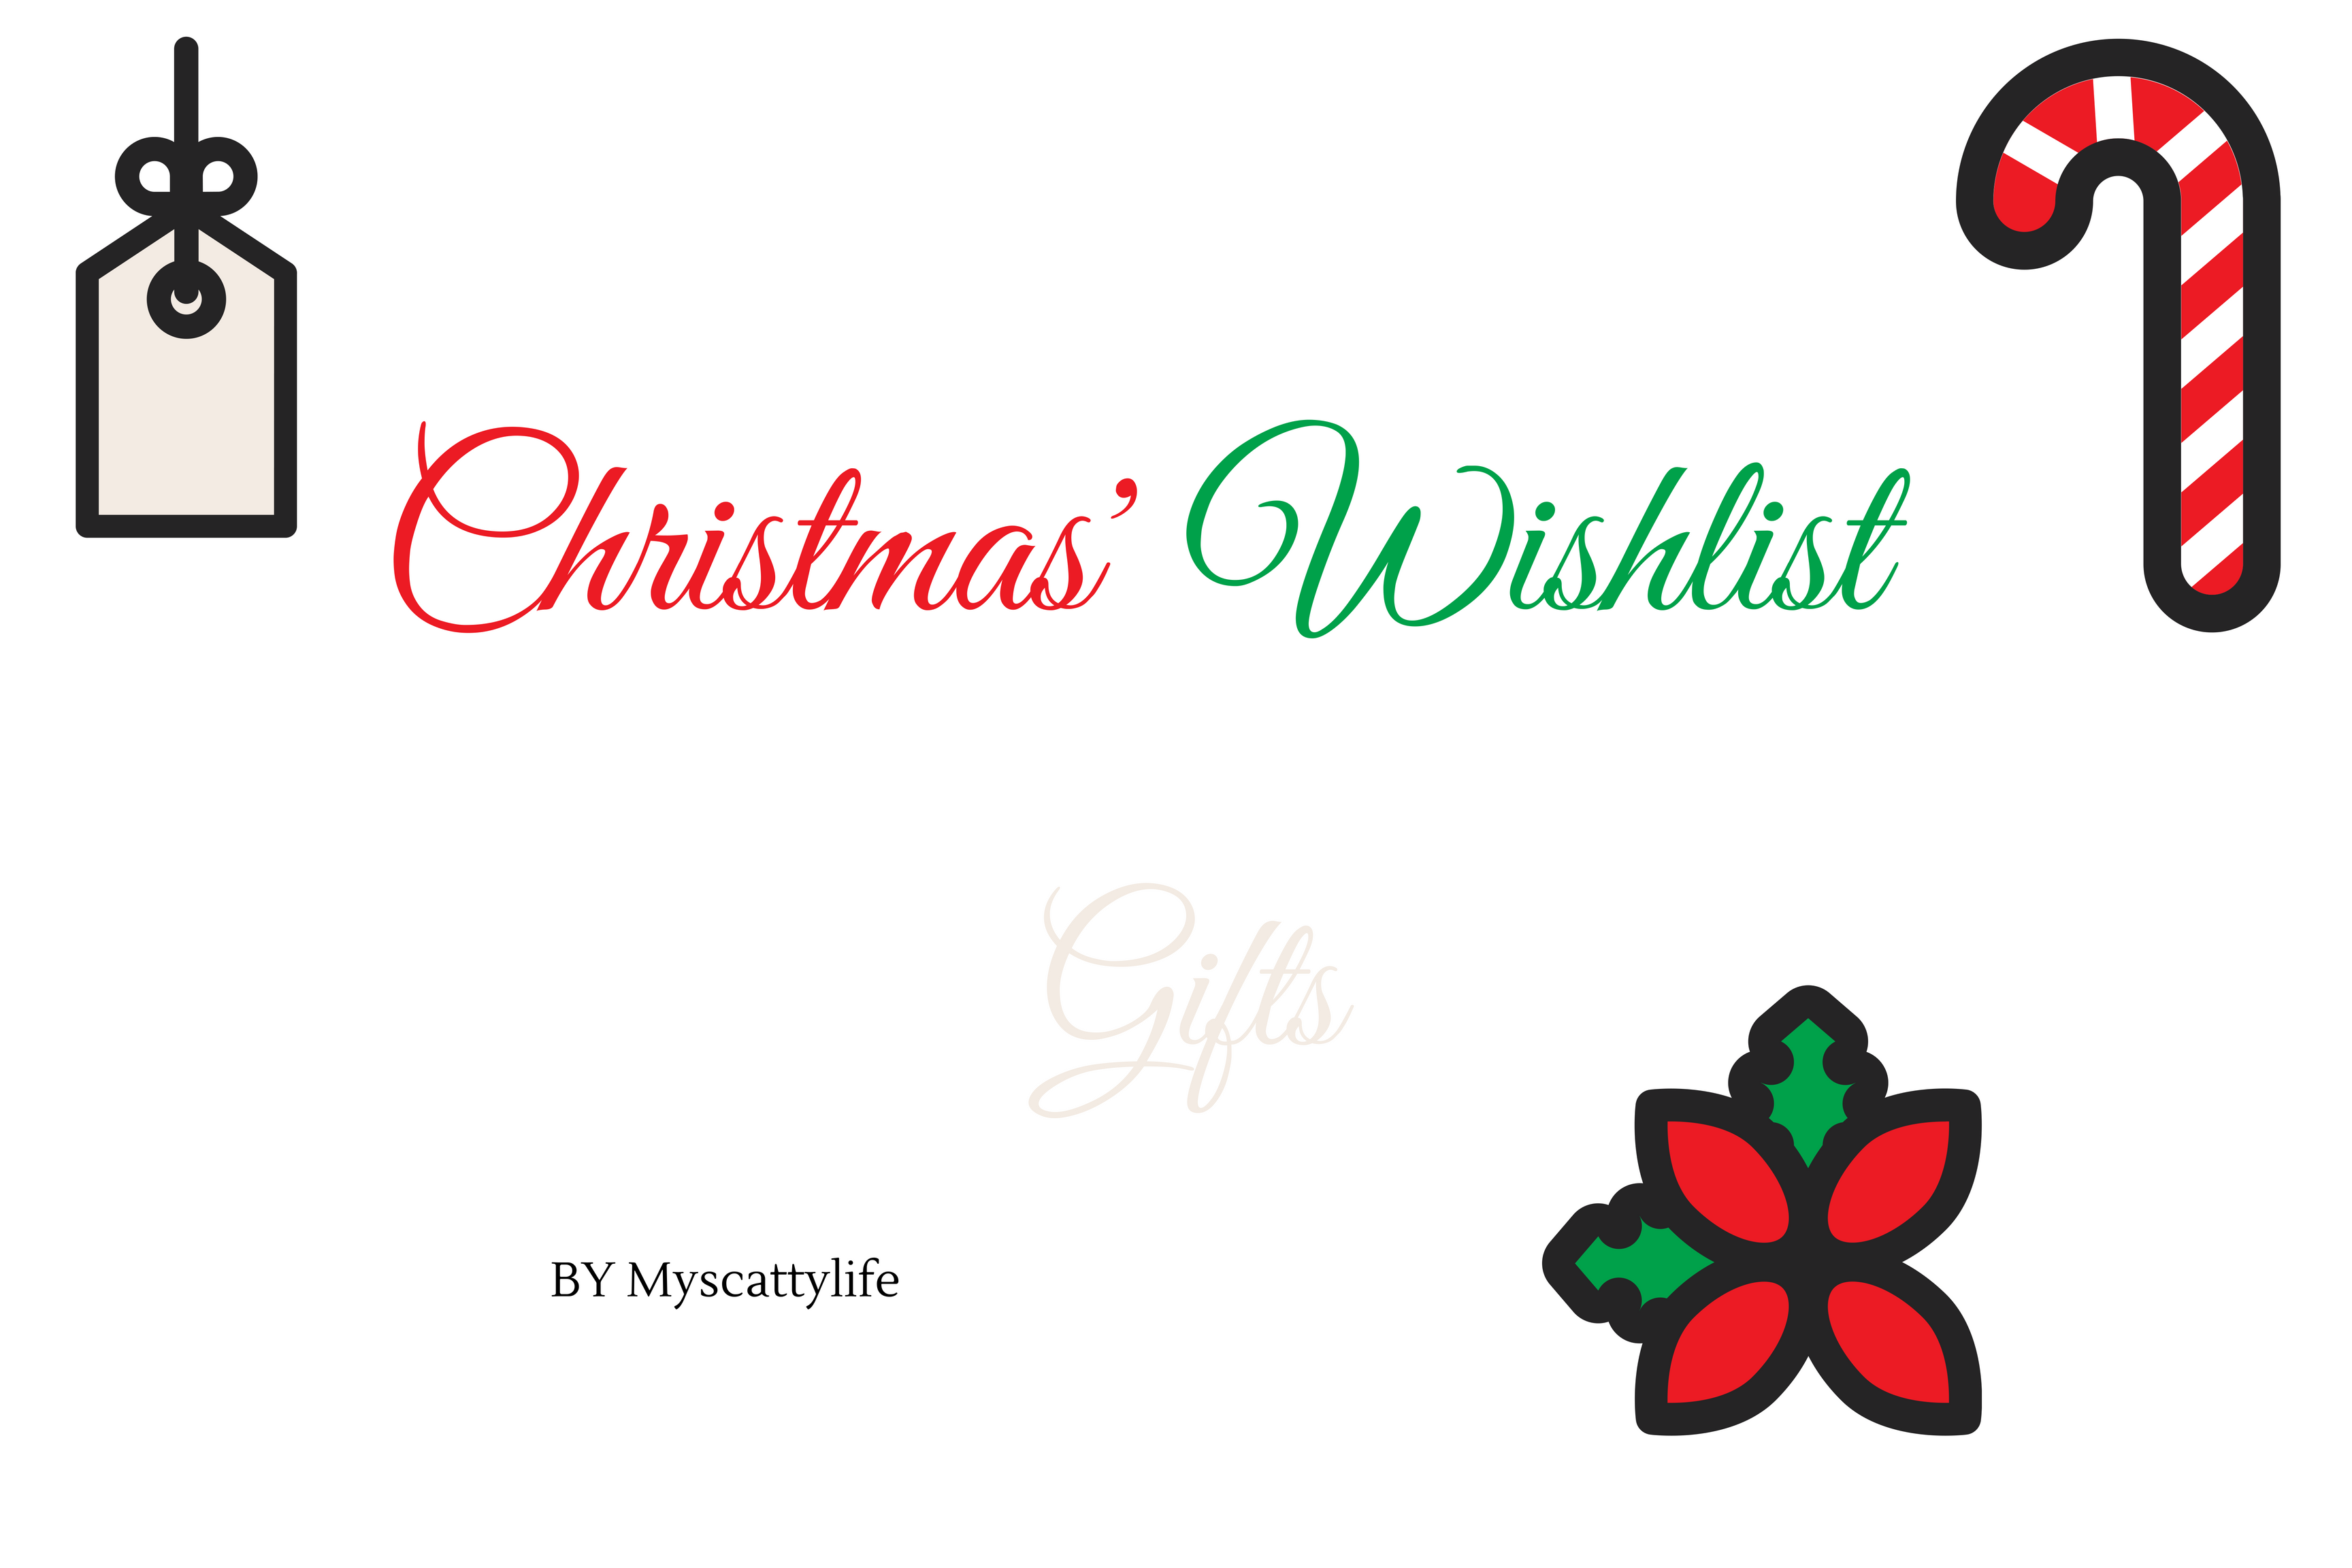 chritsmas-wishlist-gifts